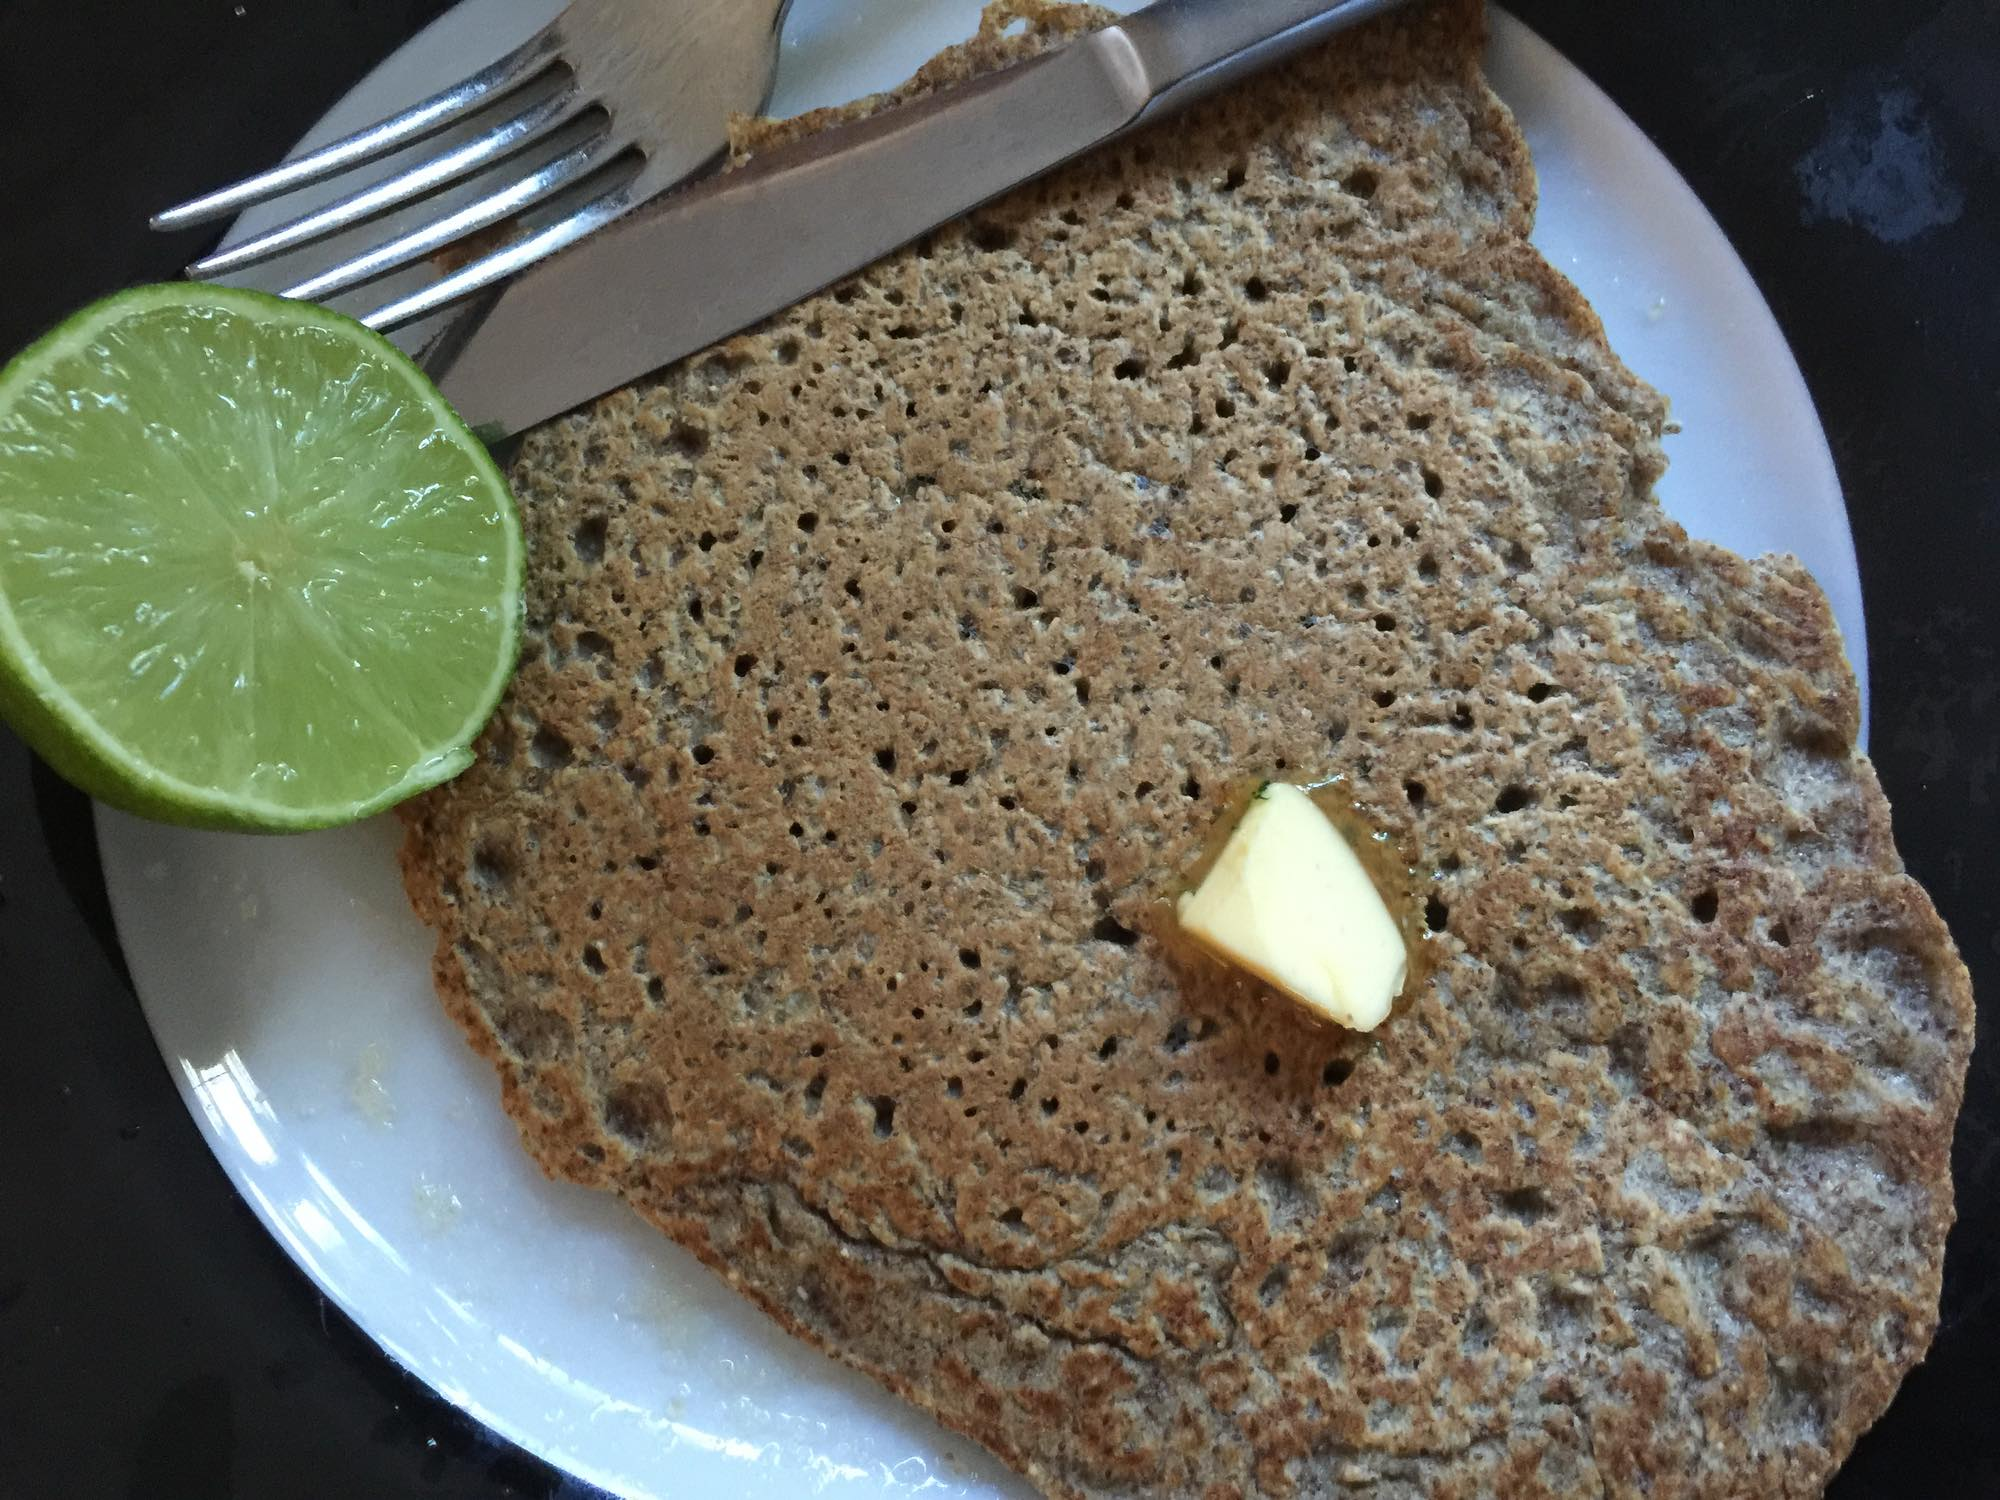 Nutrient mineral content of white flour versus whole grain and seed pancakes